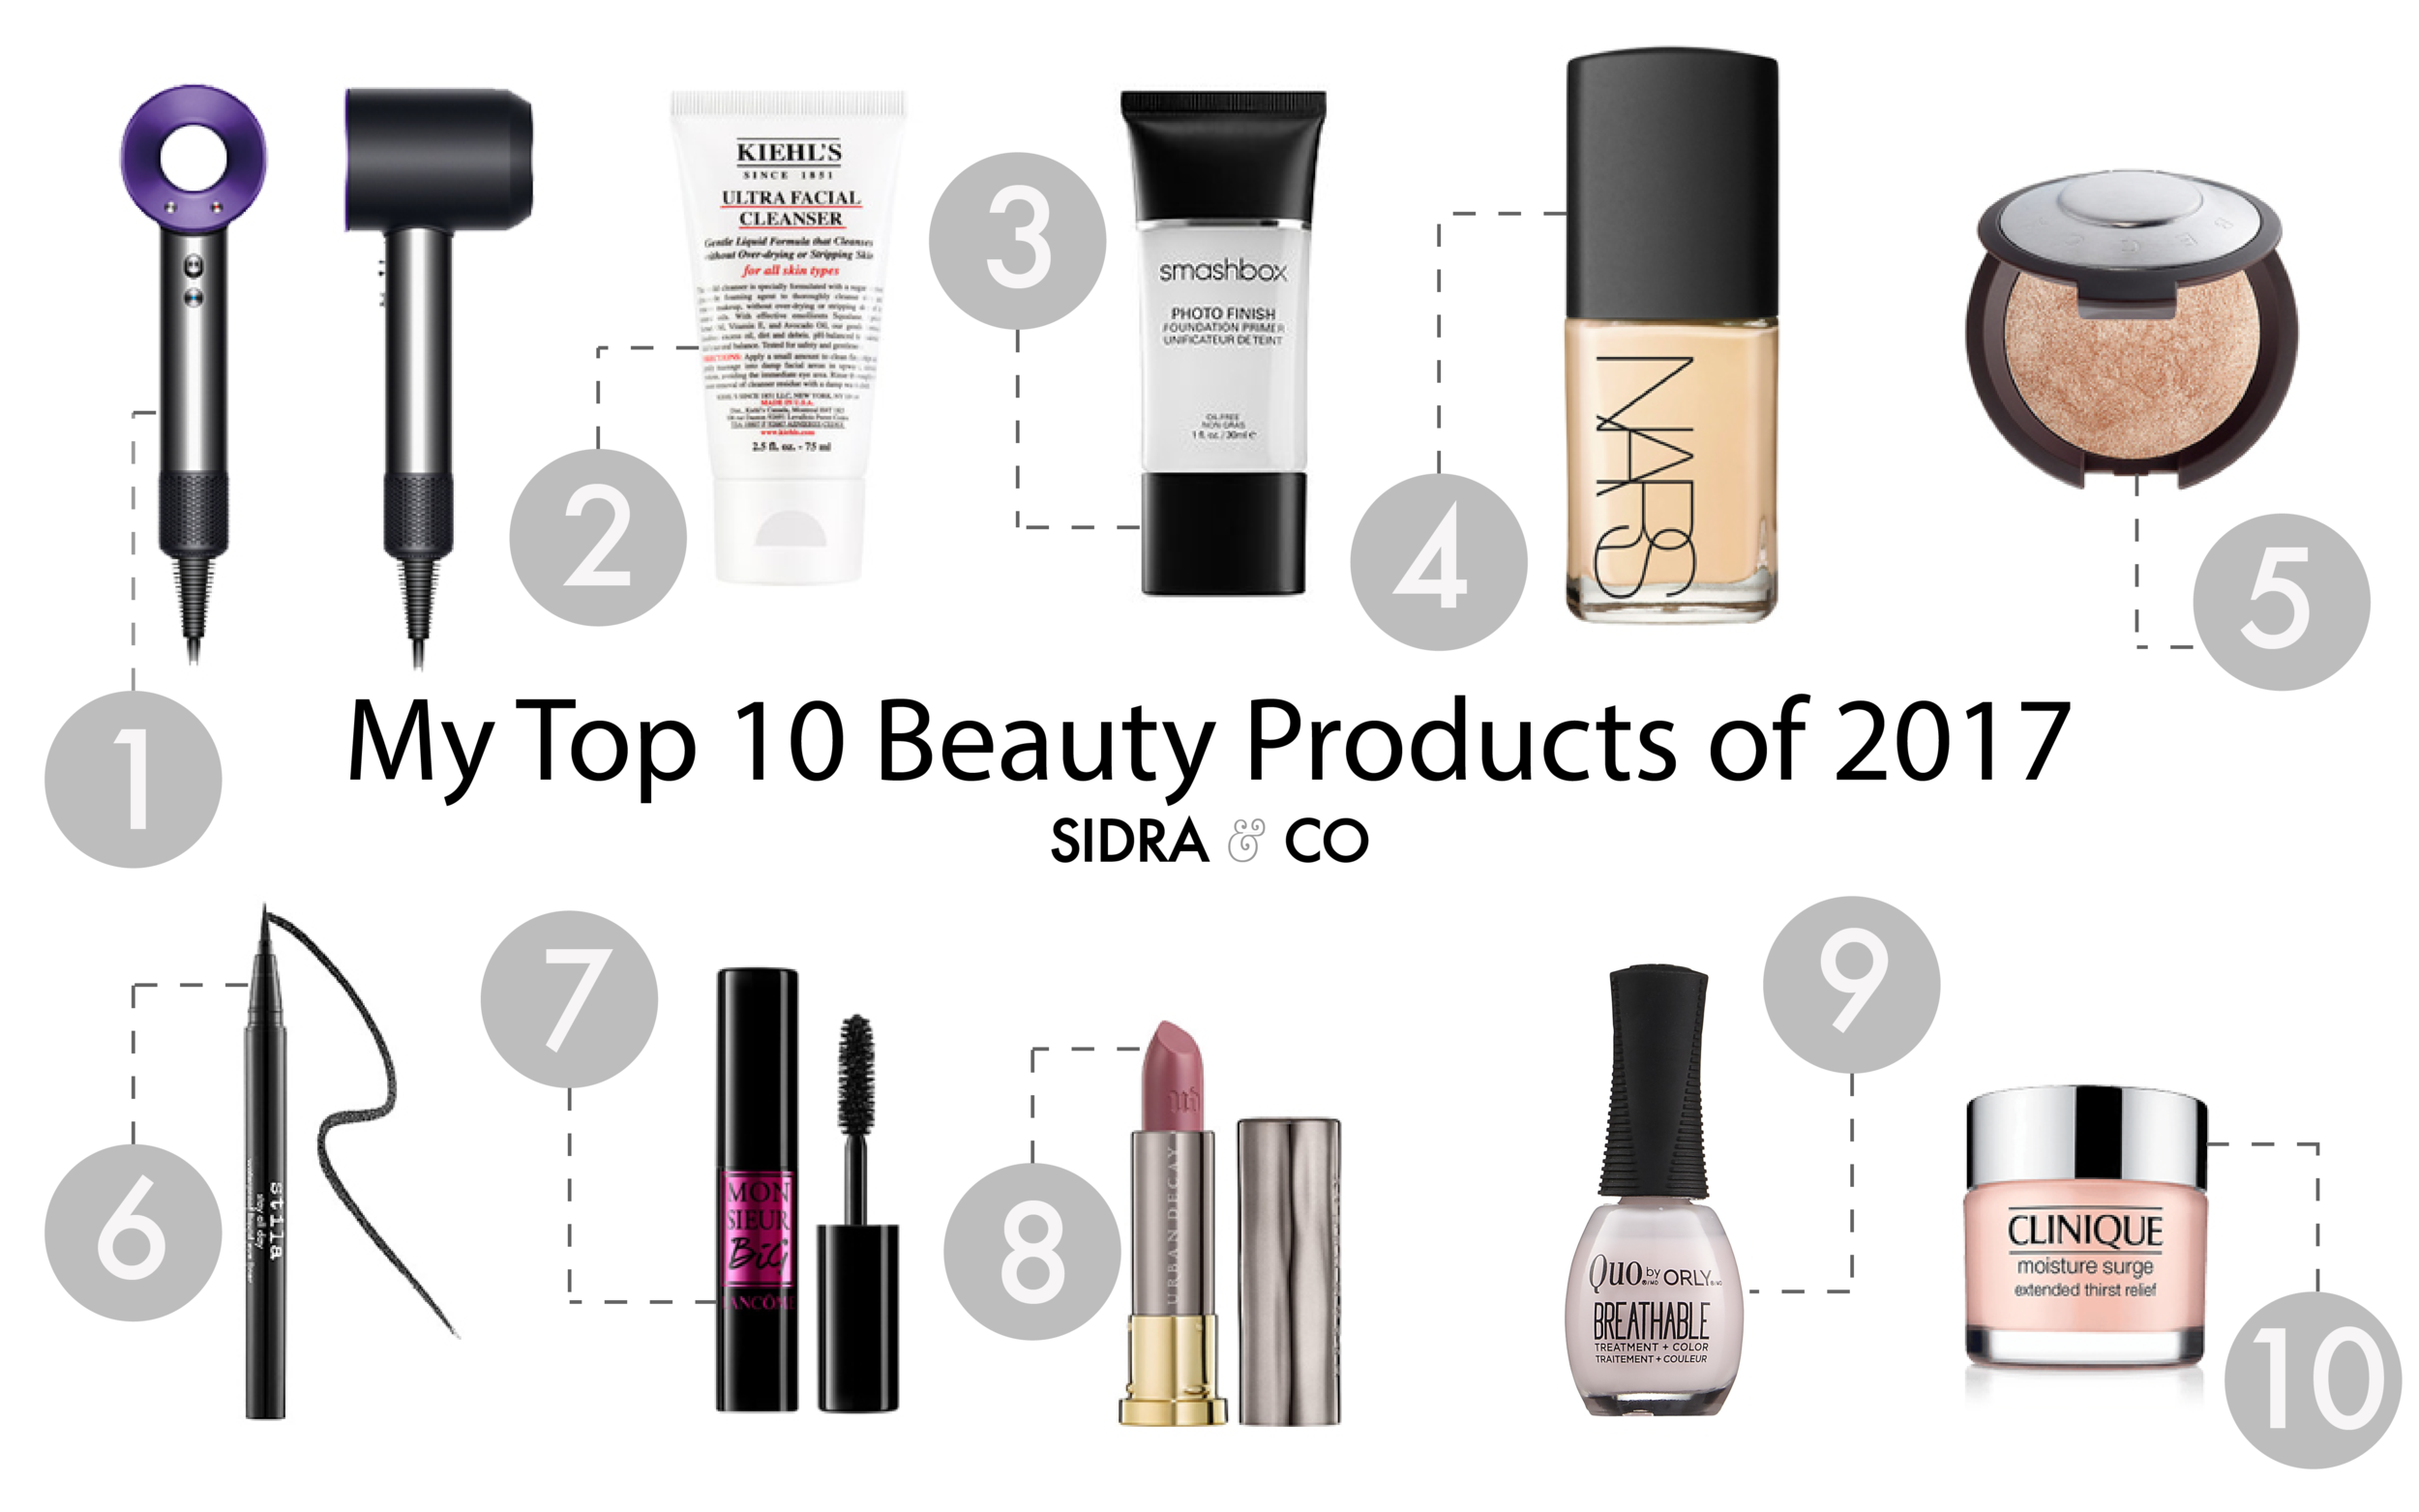 Beautyproducts-final.png